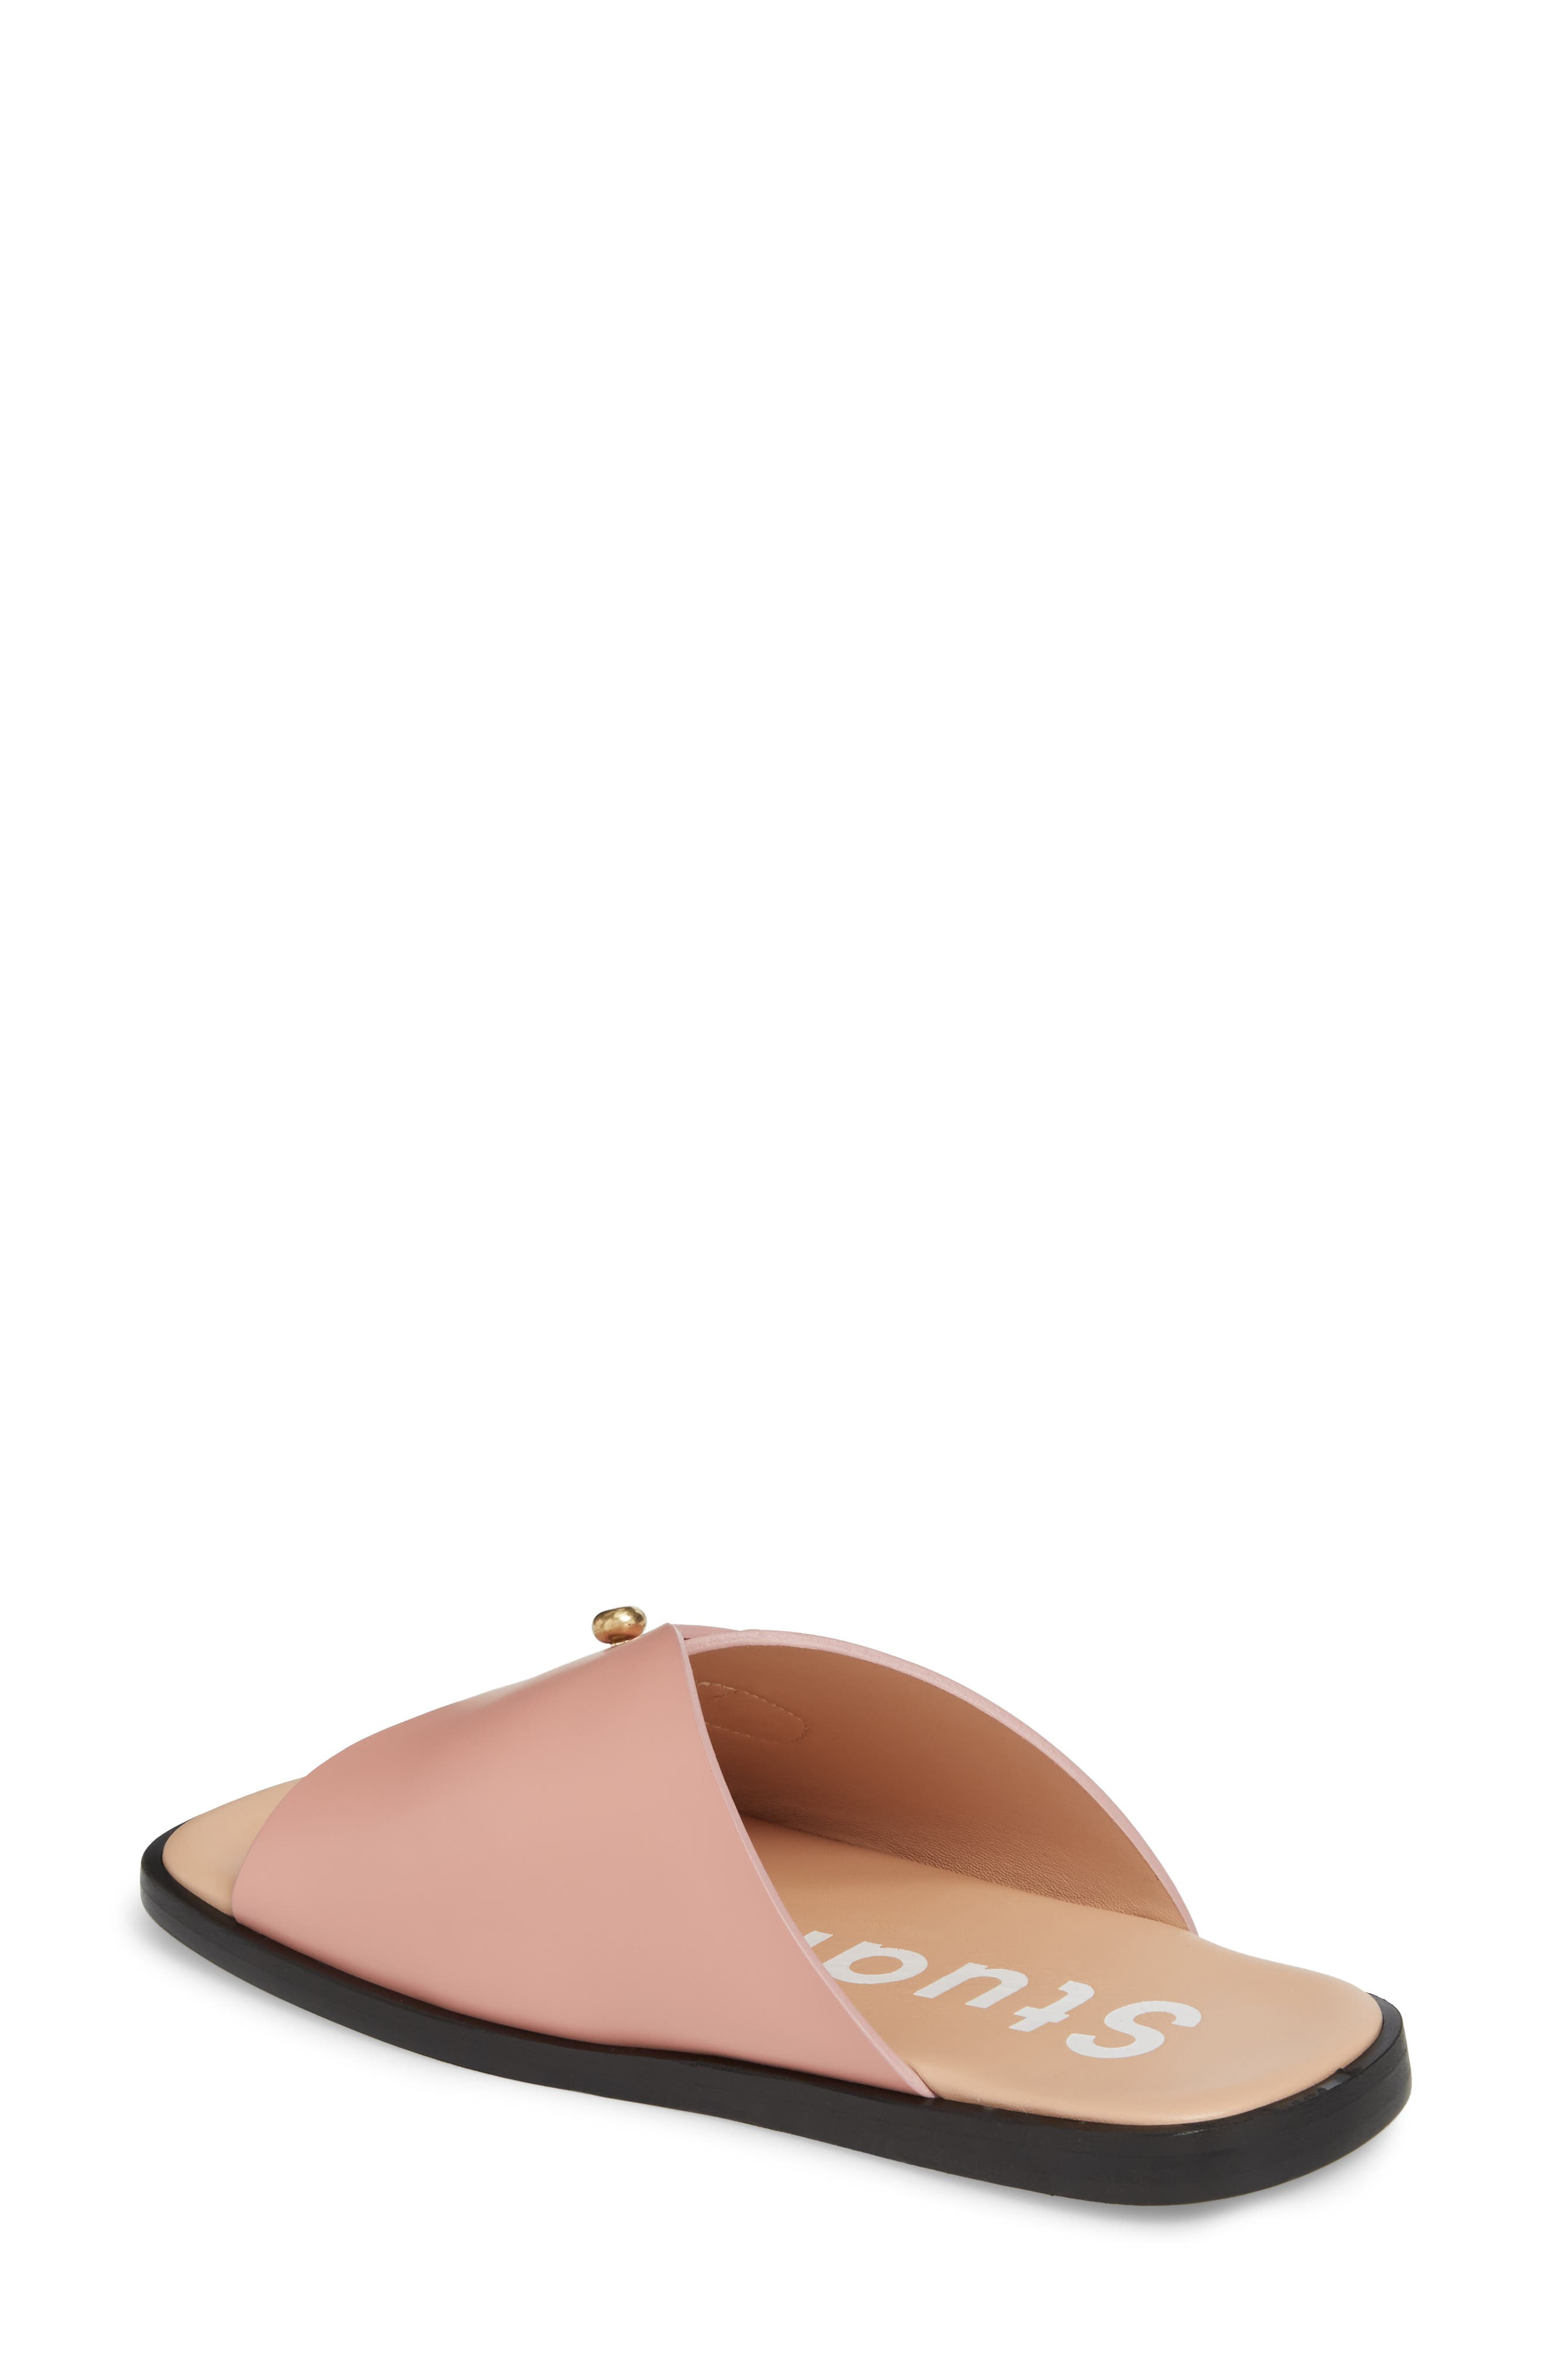 Jilly Studded Slide Sandal,                             Alternate thumbnail 2, color,                             Pink